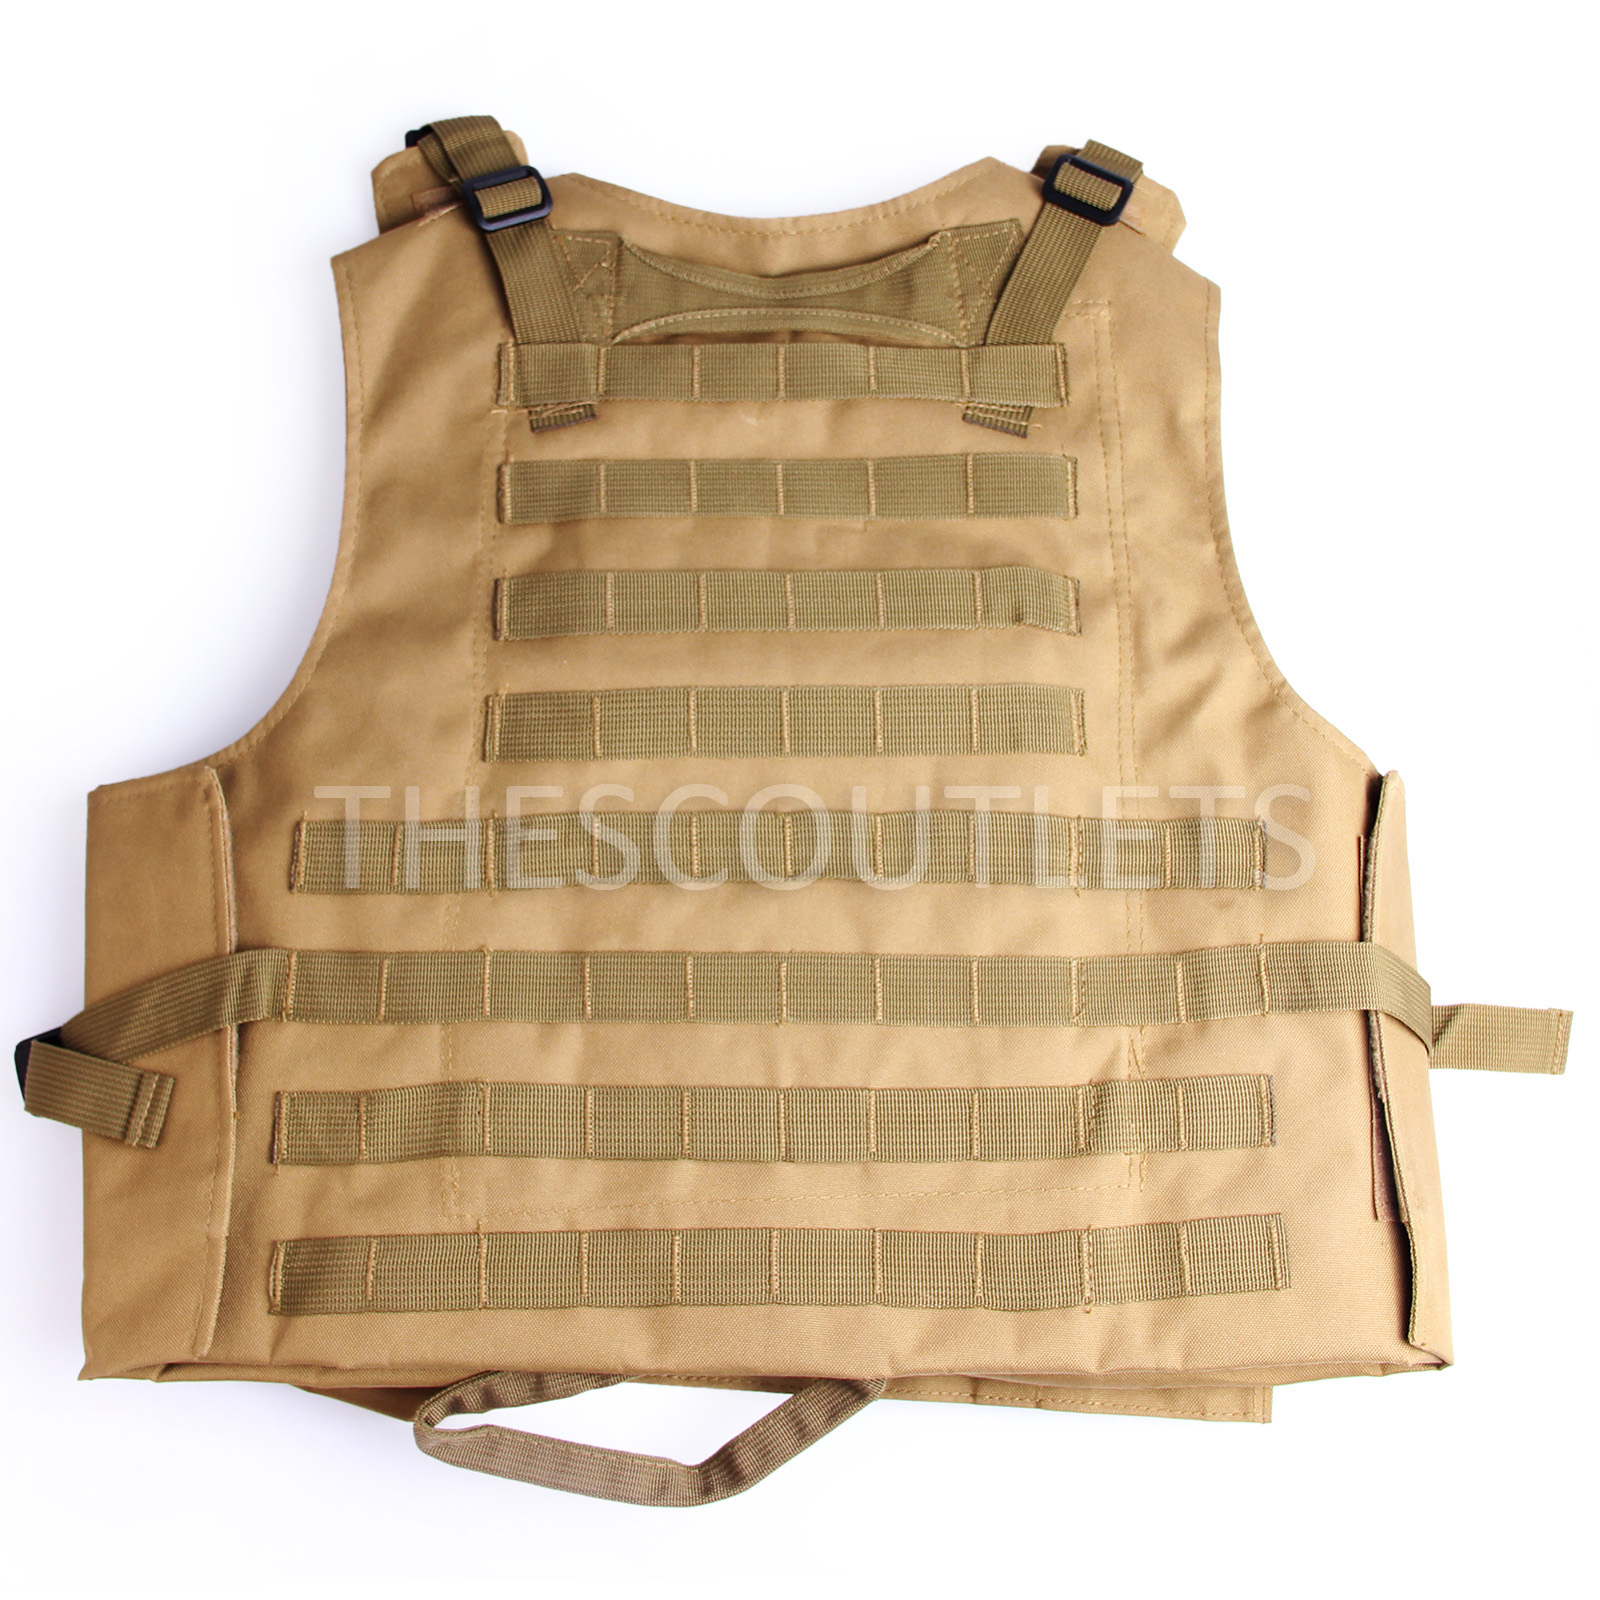 Military-Tactical-Paintball-Army-Molle-Carrier-Adjustable-Airsoft-Combat-Vest thumbnail 23